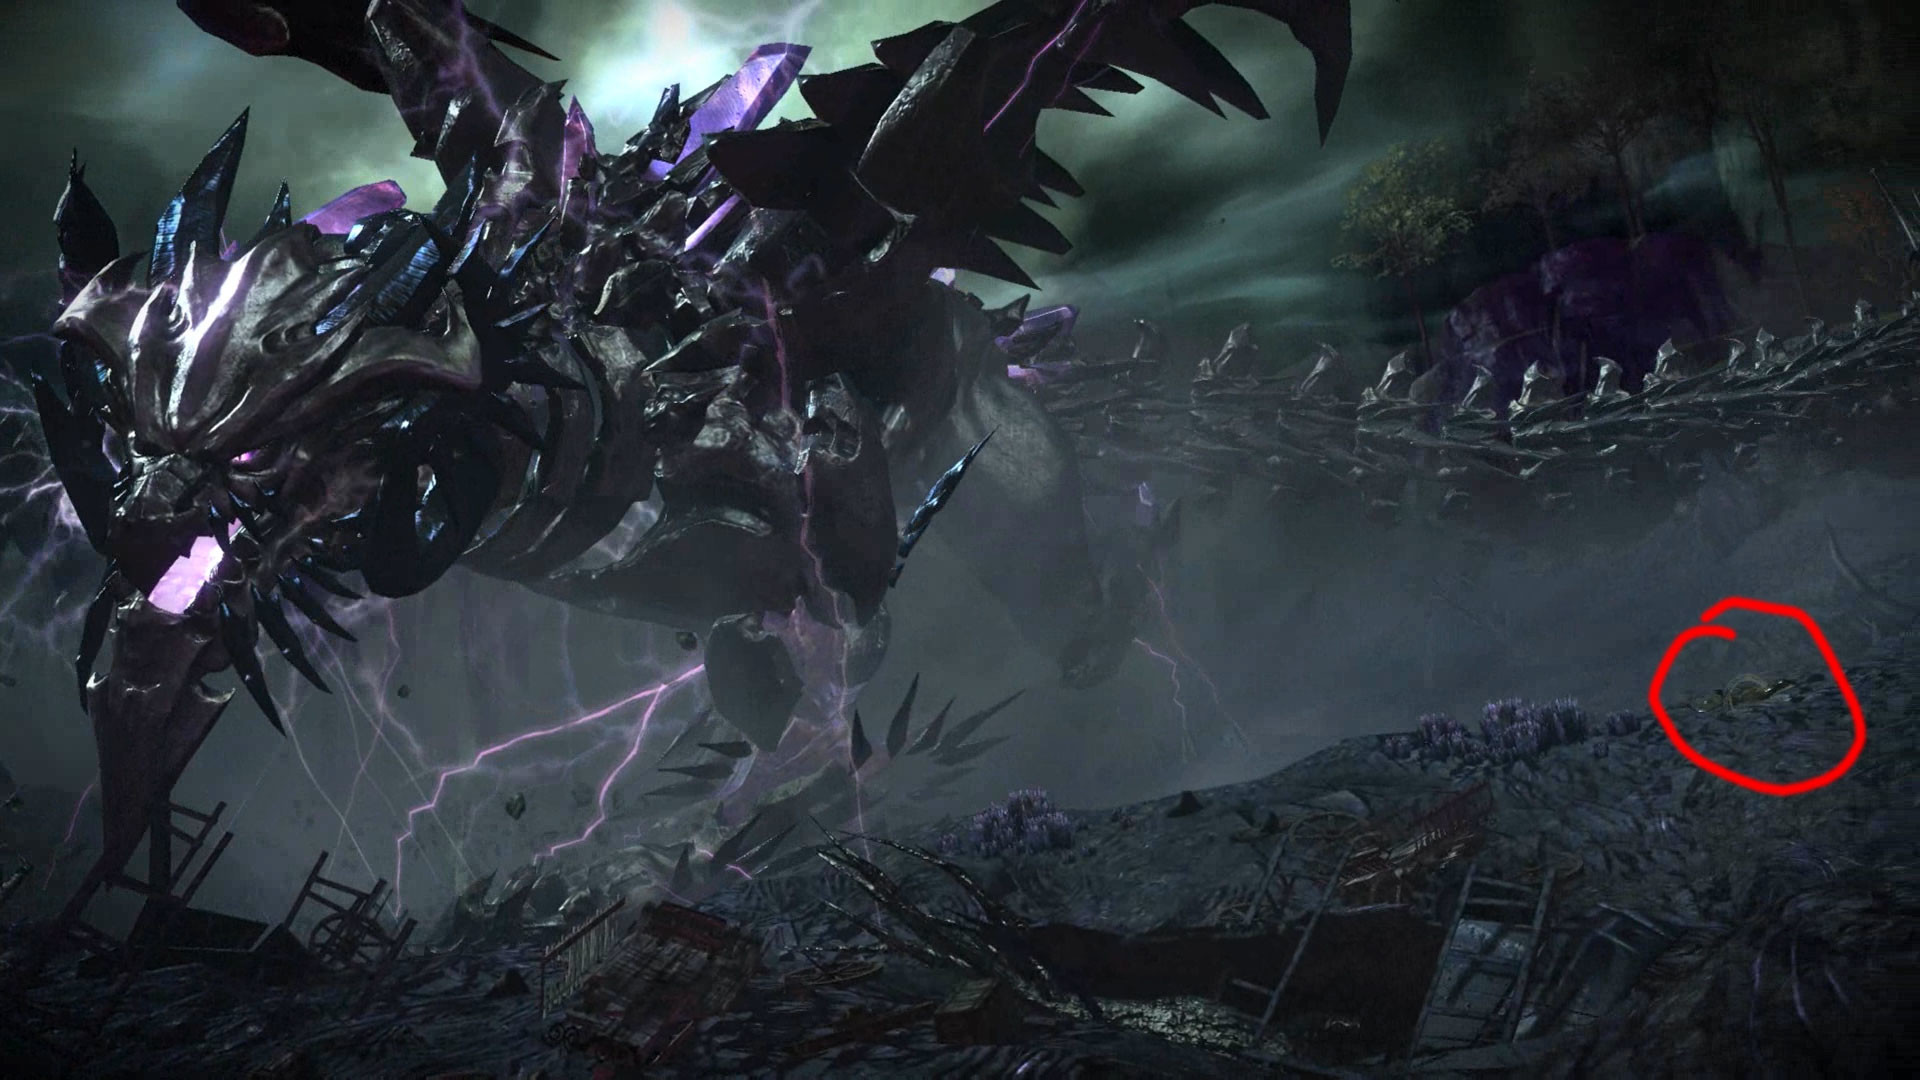 Guild Wars 2 Guardian Wallpapers Px M Dragon Guild Wars 2 Wallpaper Hd 1920x1080 Wallpaper Teahub Io